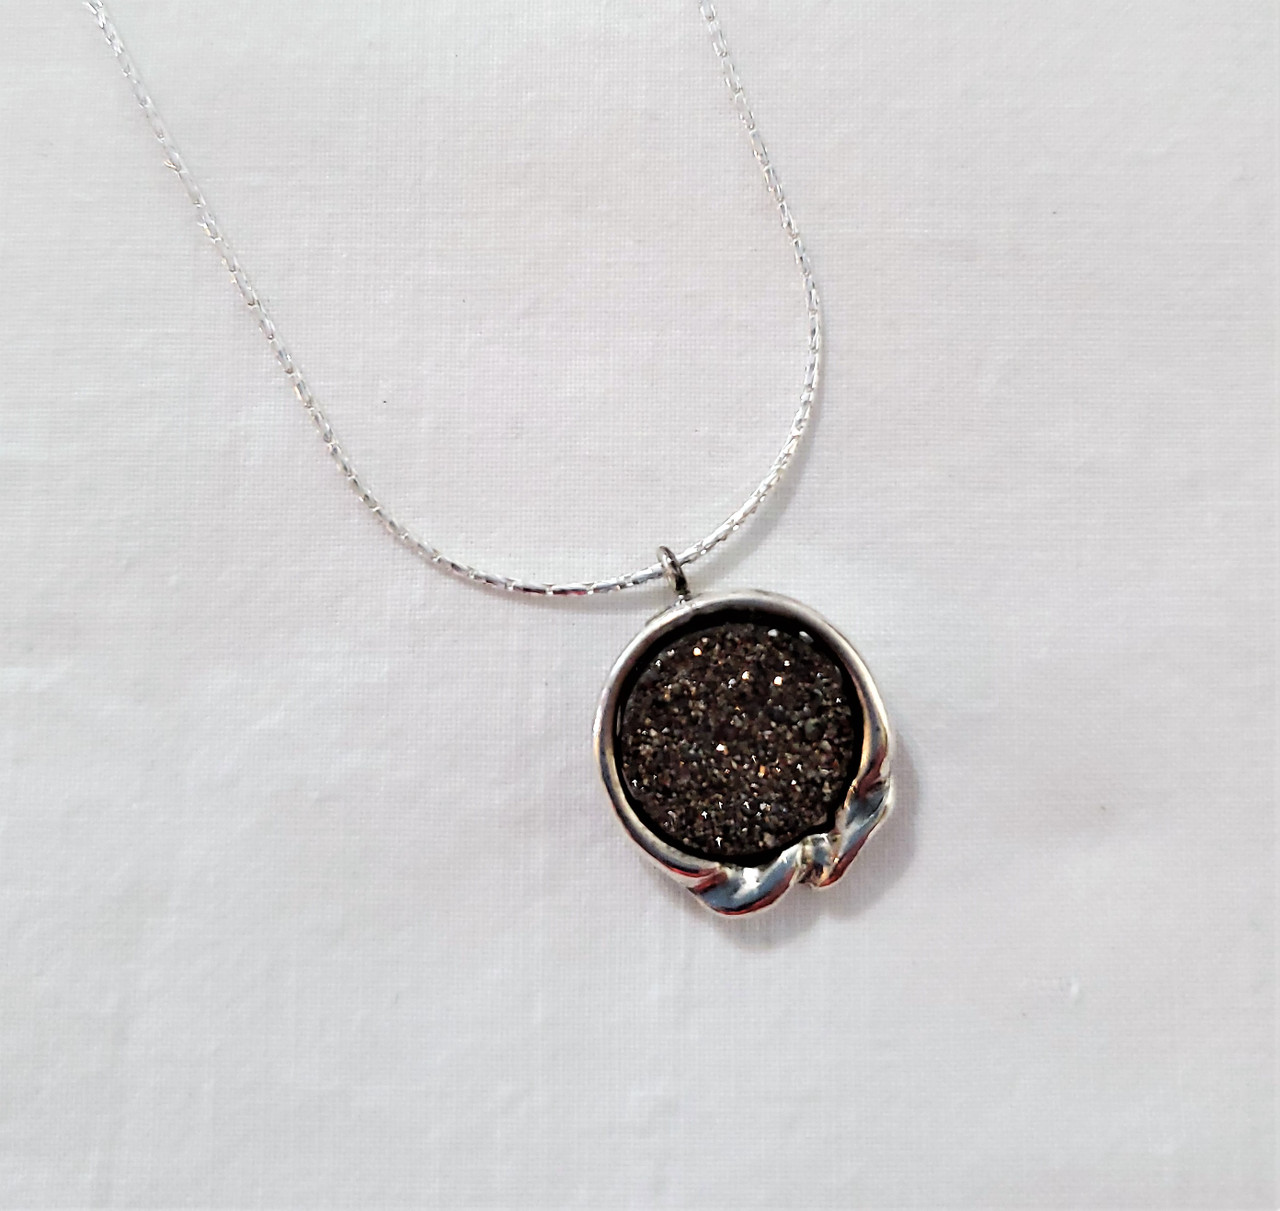 Sterling Silver and Charcoal Druzy Quartz Pendant with Ribbon Necklace